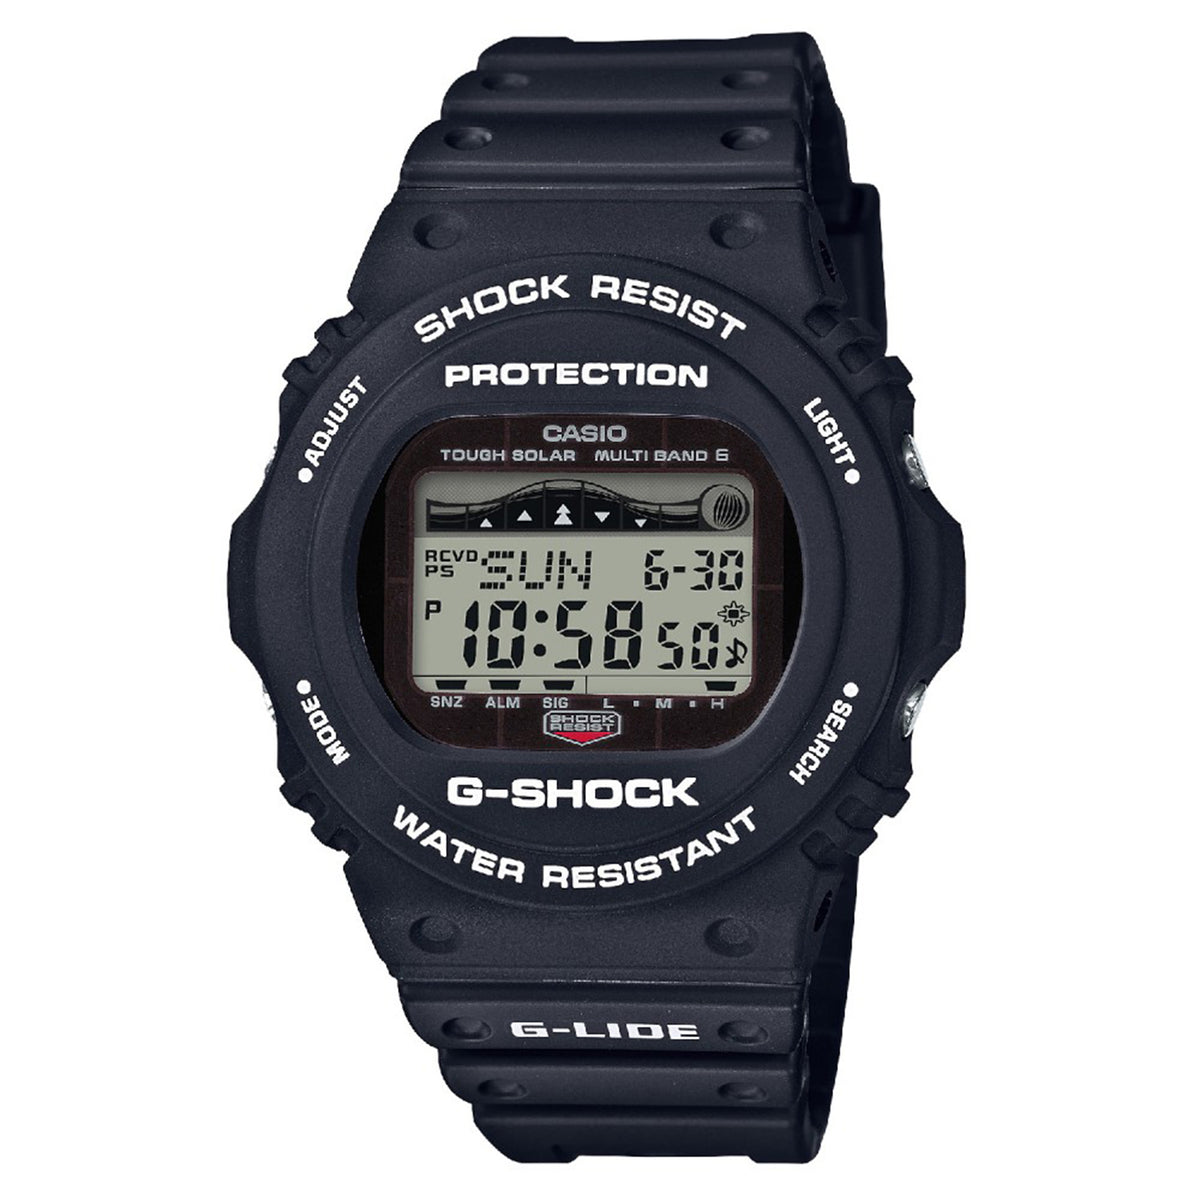 G-Shock: GWX5700CS-1 Watch - Black